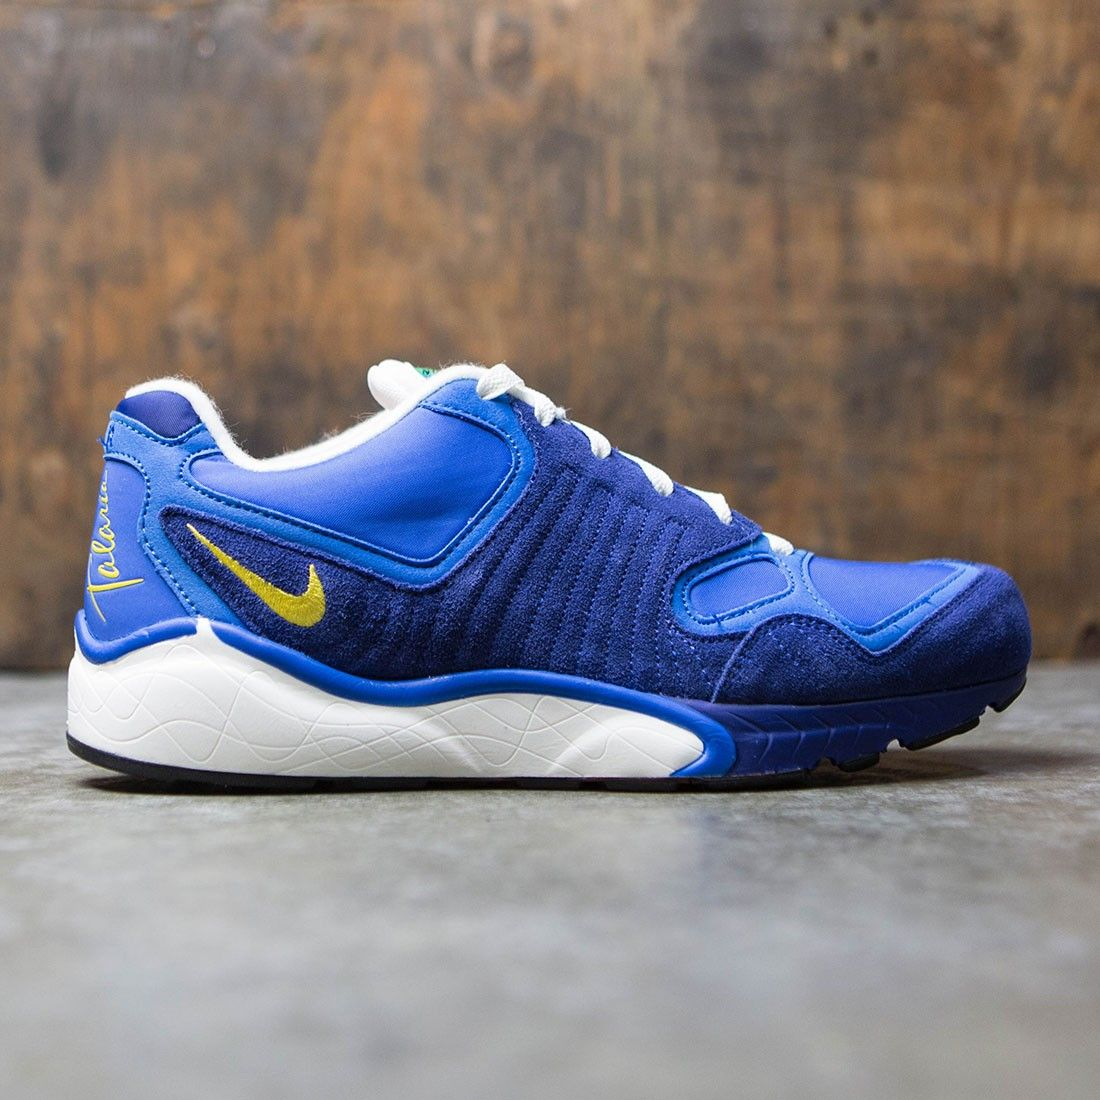 on sale a3876 3b1fa Nike Men Air Zoom Talaria 16 (soar  vivid sulfur-deep royal blue-black)